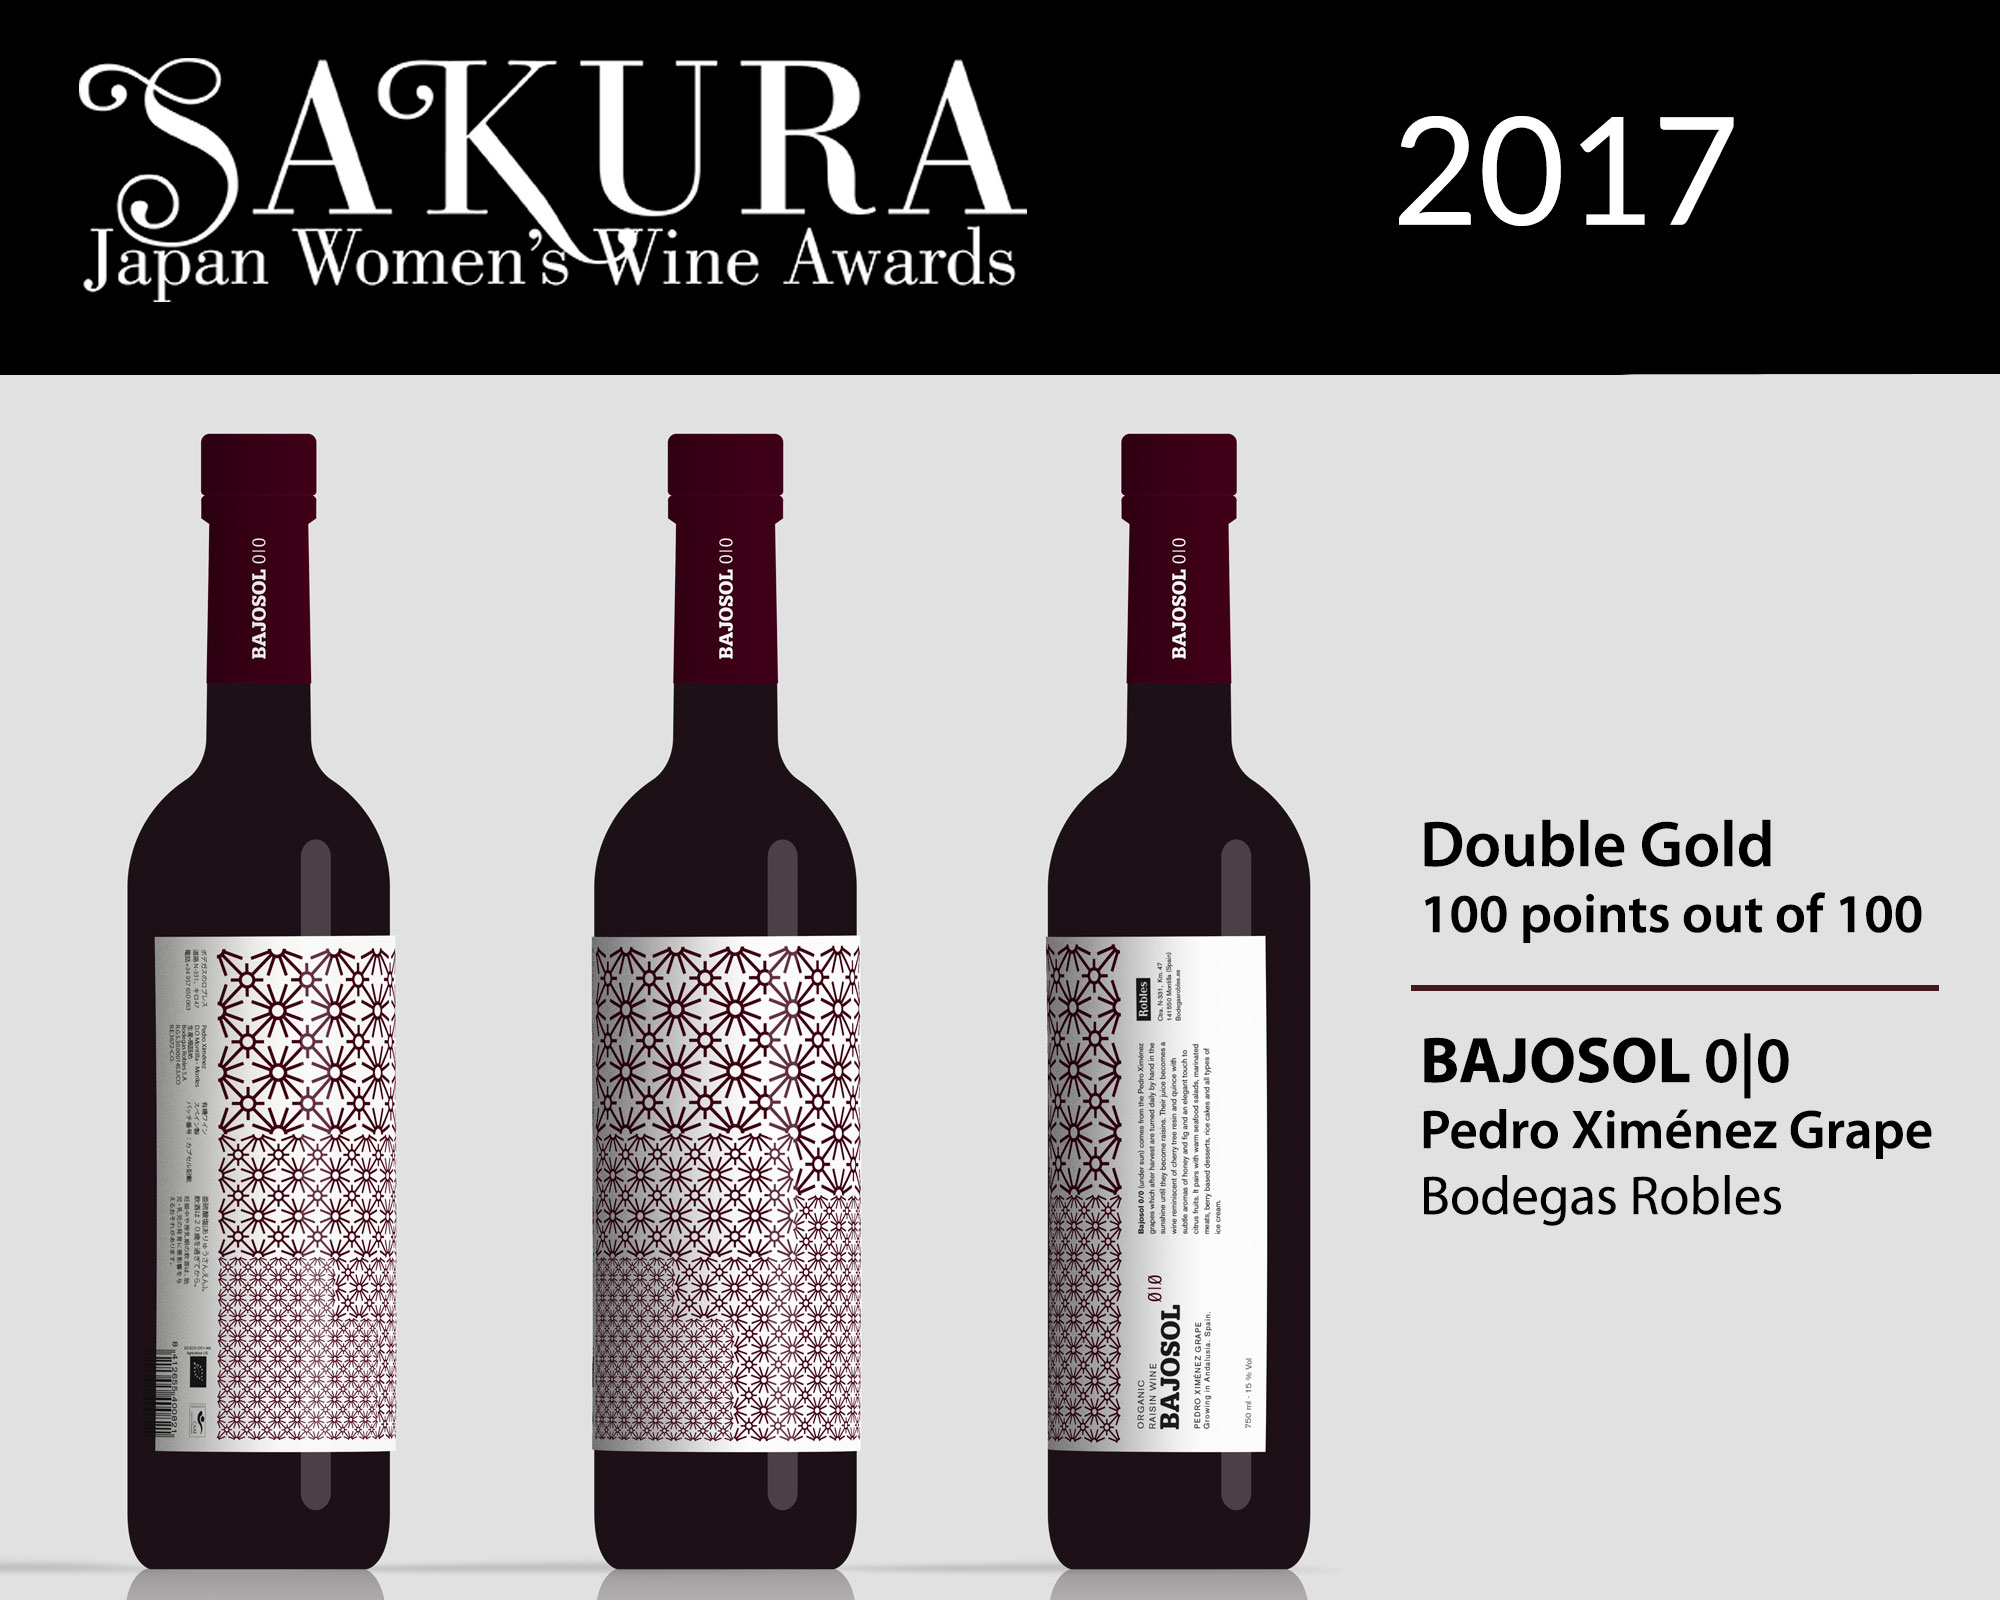 Bodegas Robles gets 100 points out of 100 in Japan.